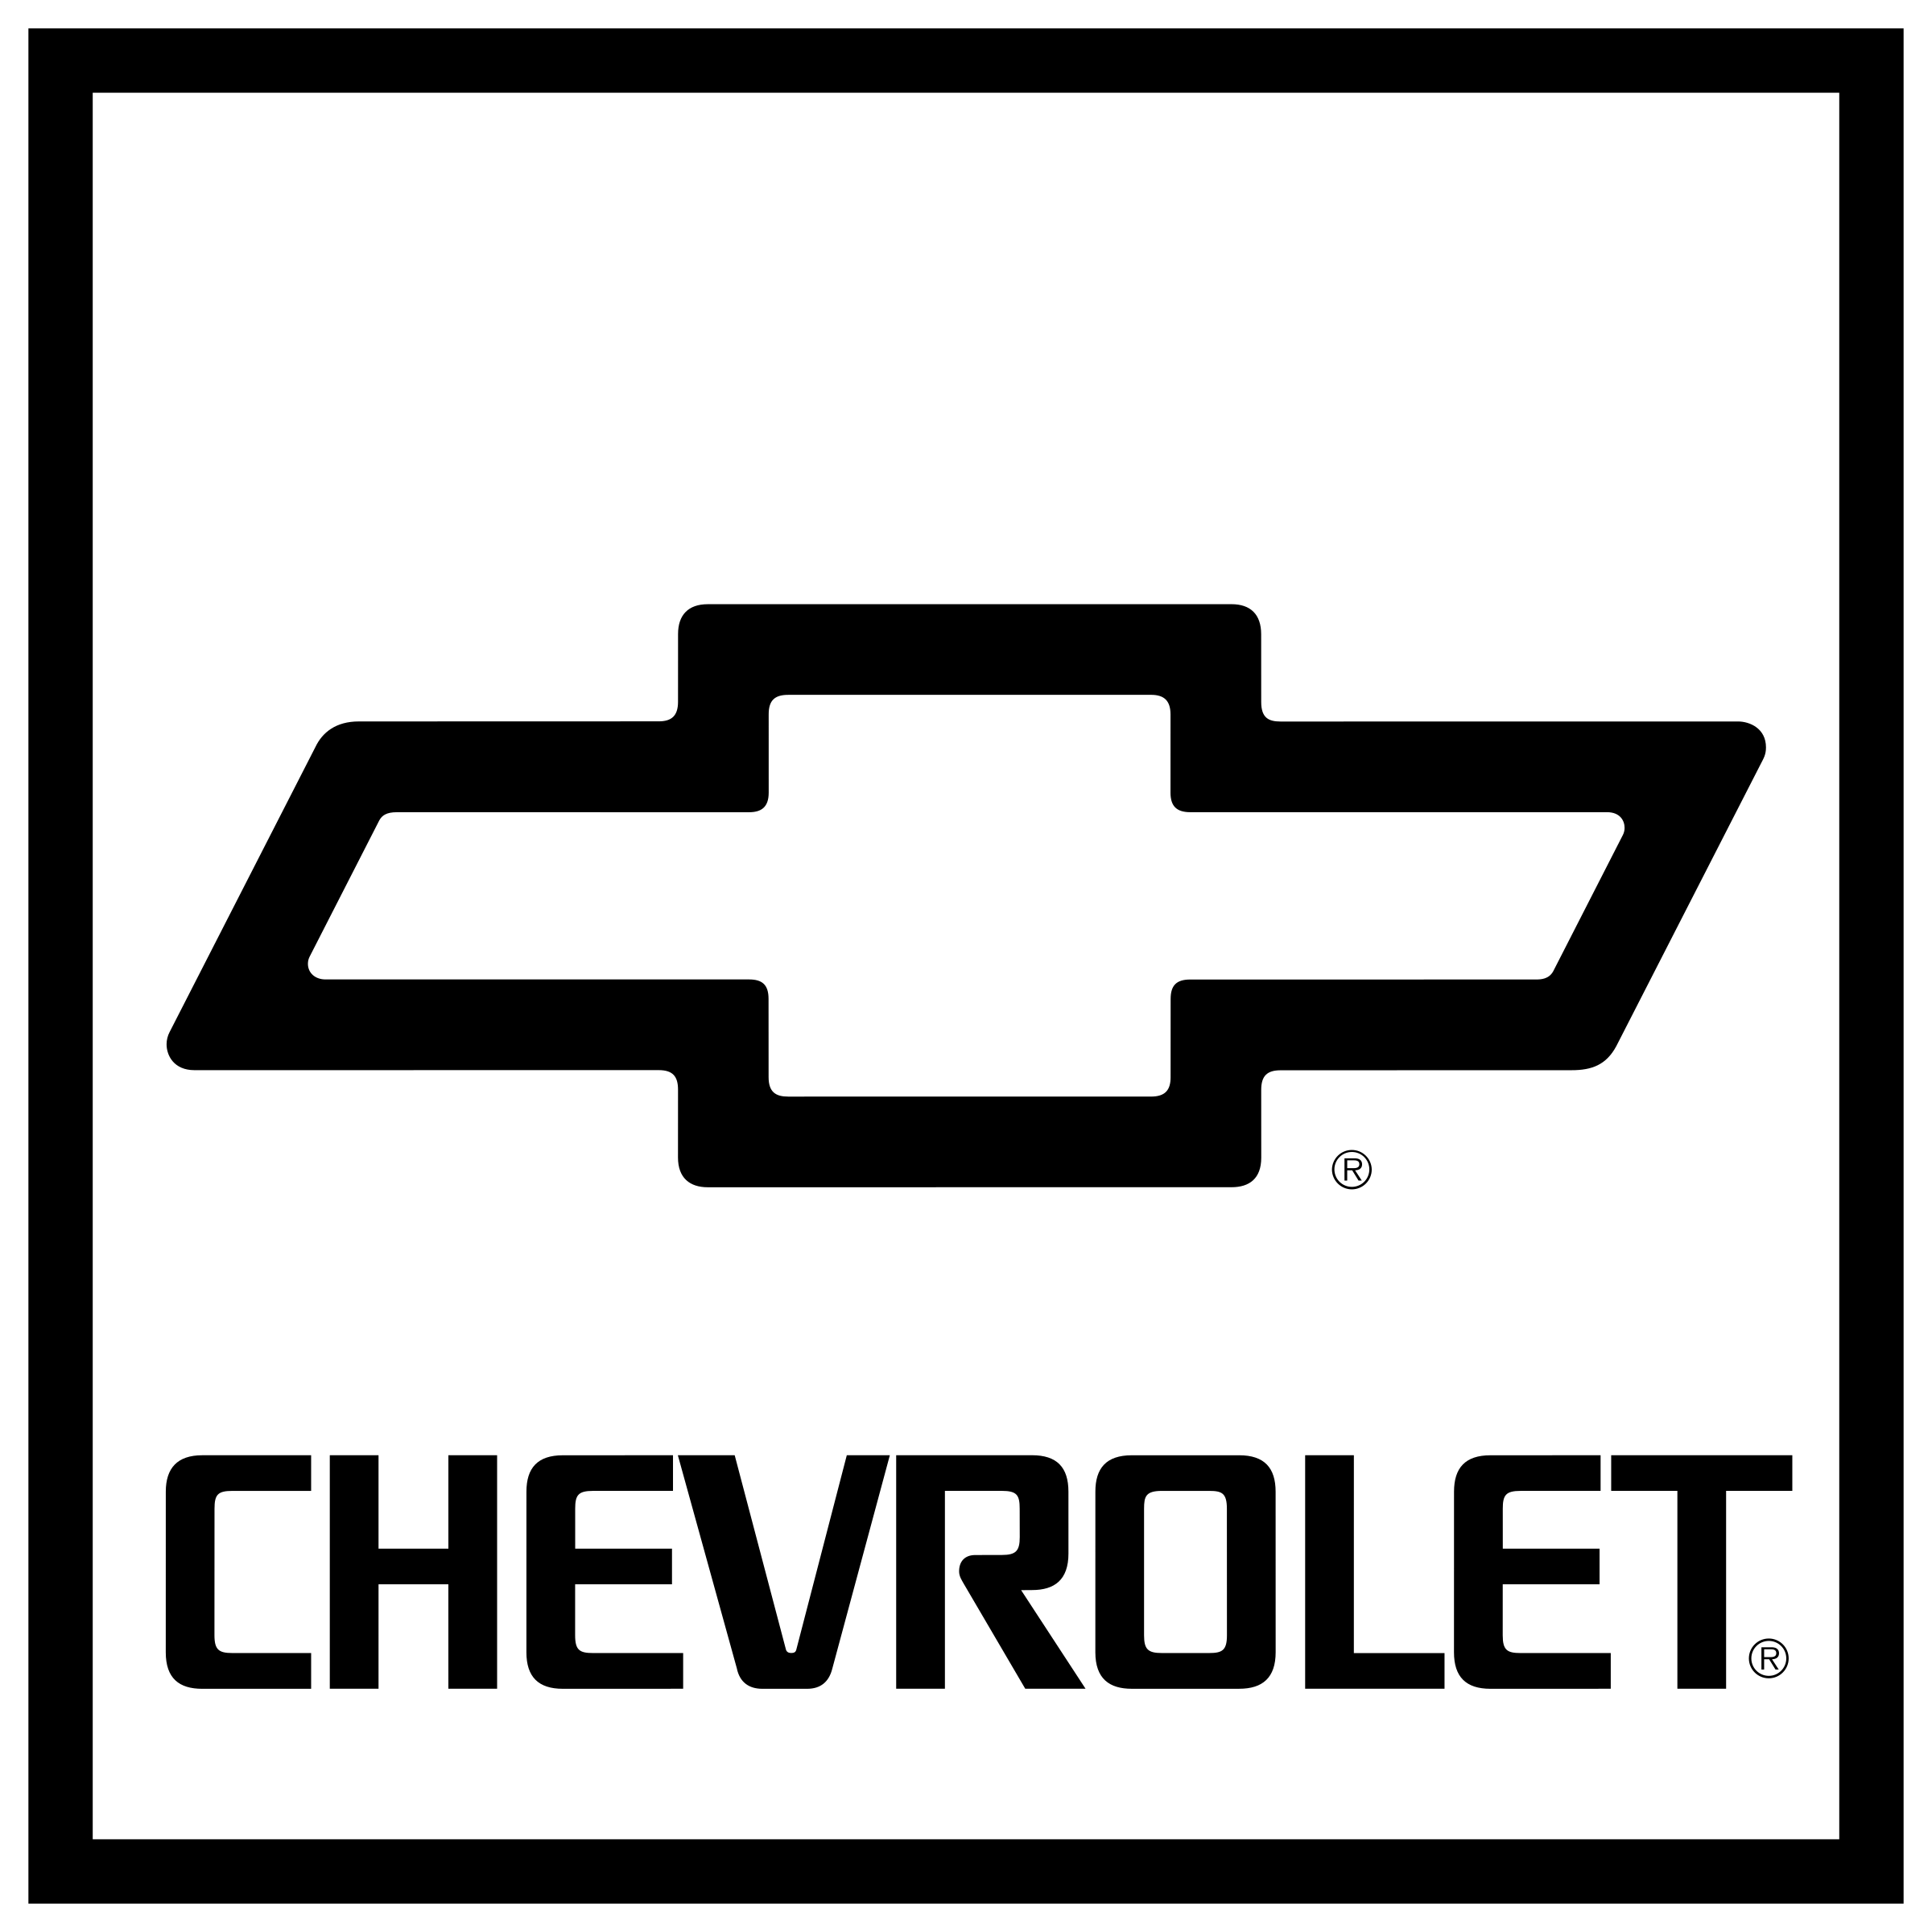 Chevy Bowtie Vector At Vectorified